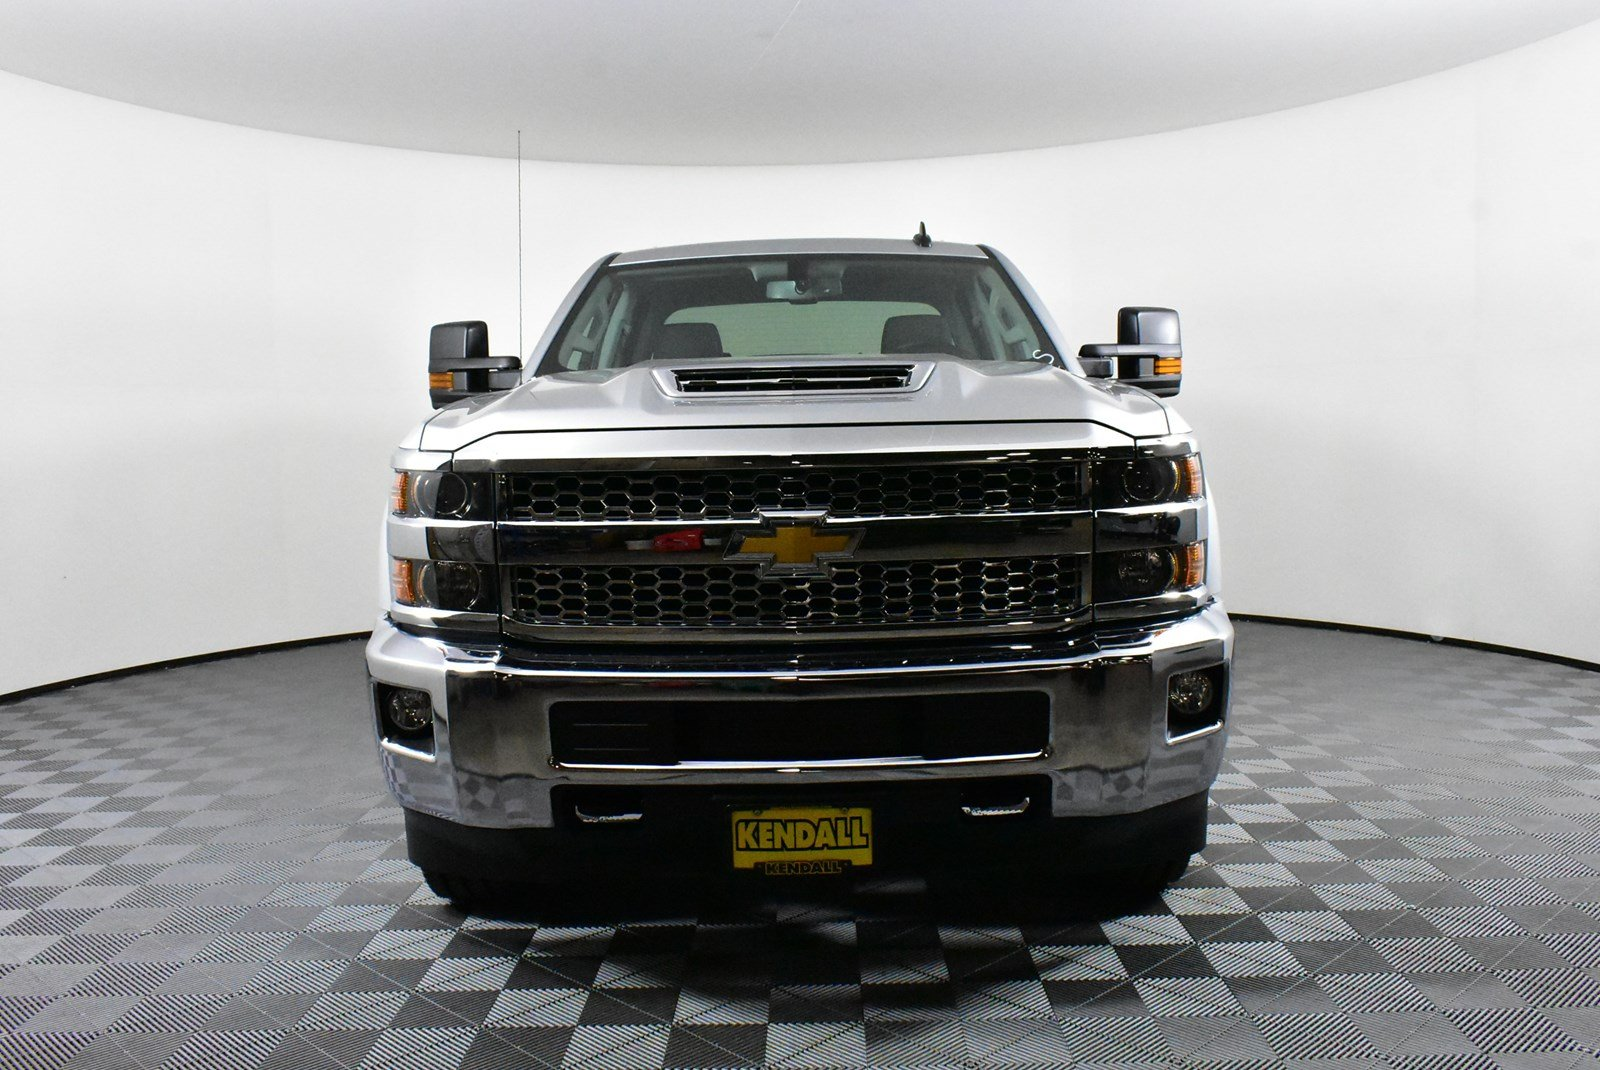 New 2019 Chevrolet Silverado 2500hd Lt 4wd In Nampa D190732 Vw Wiring Harness Compass